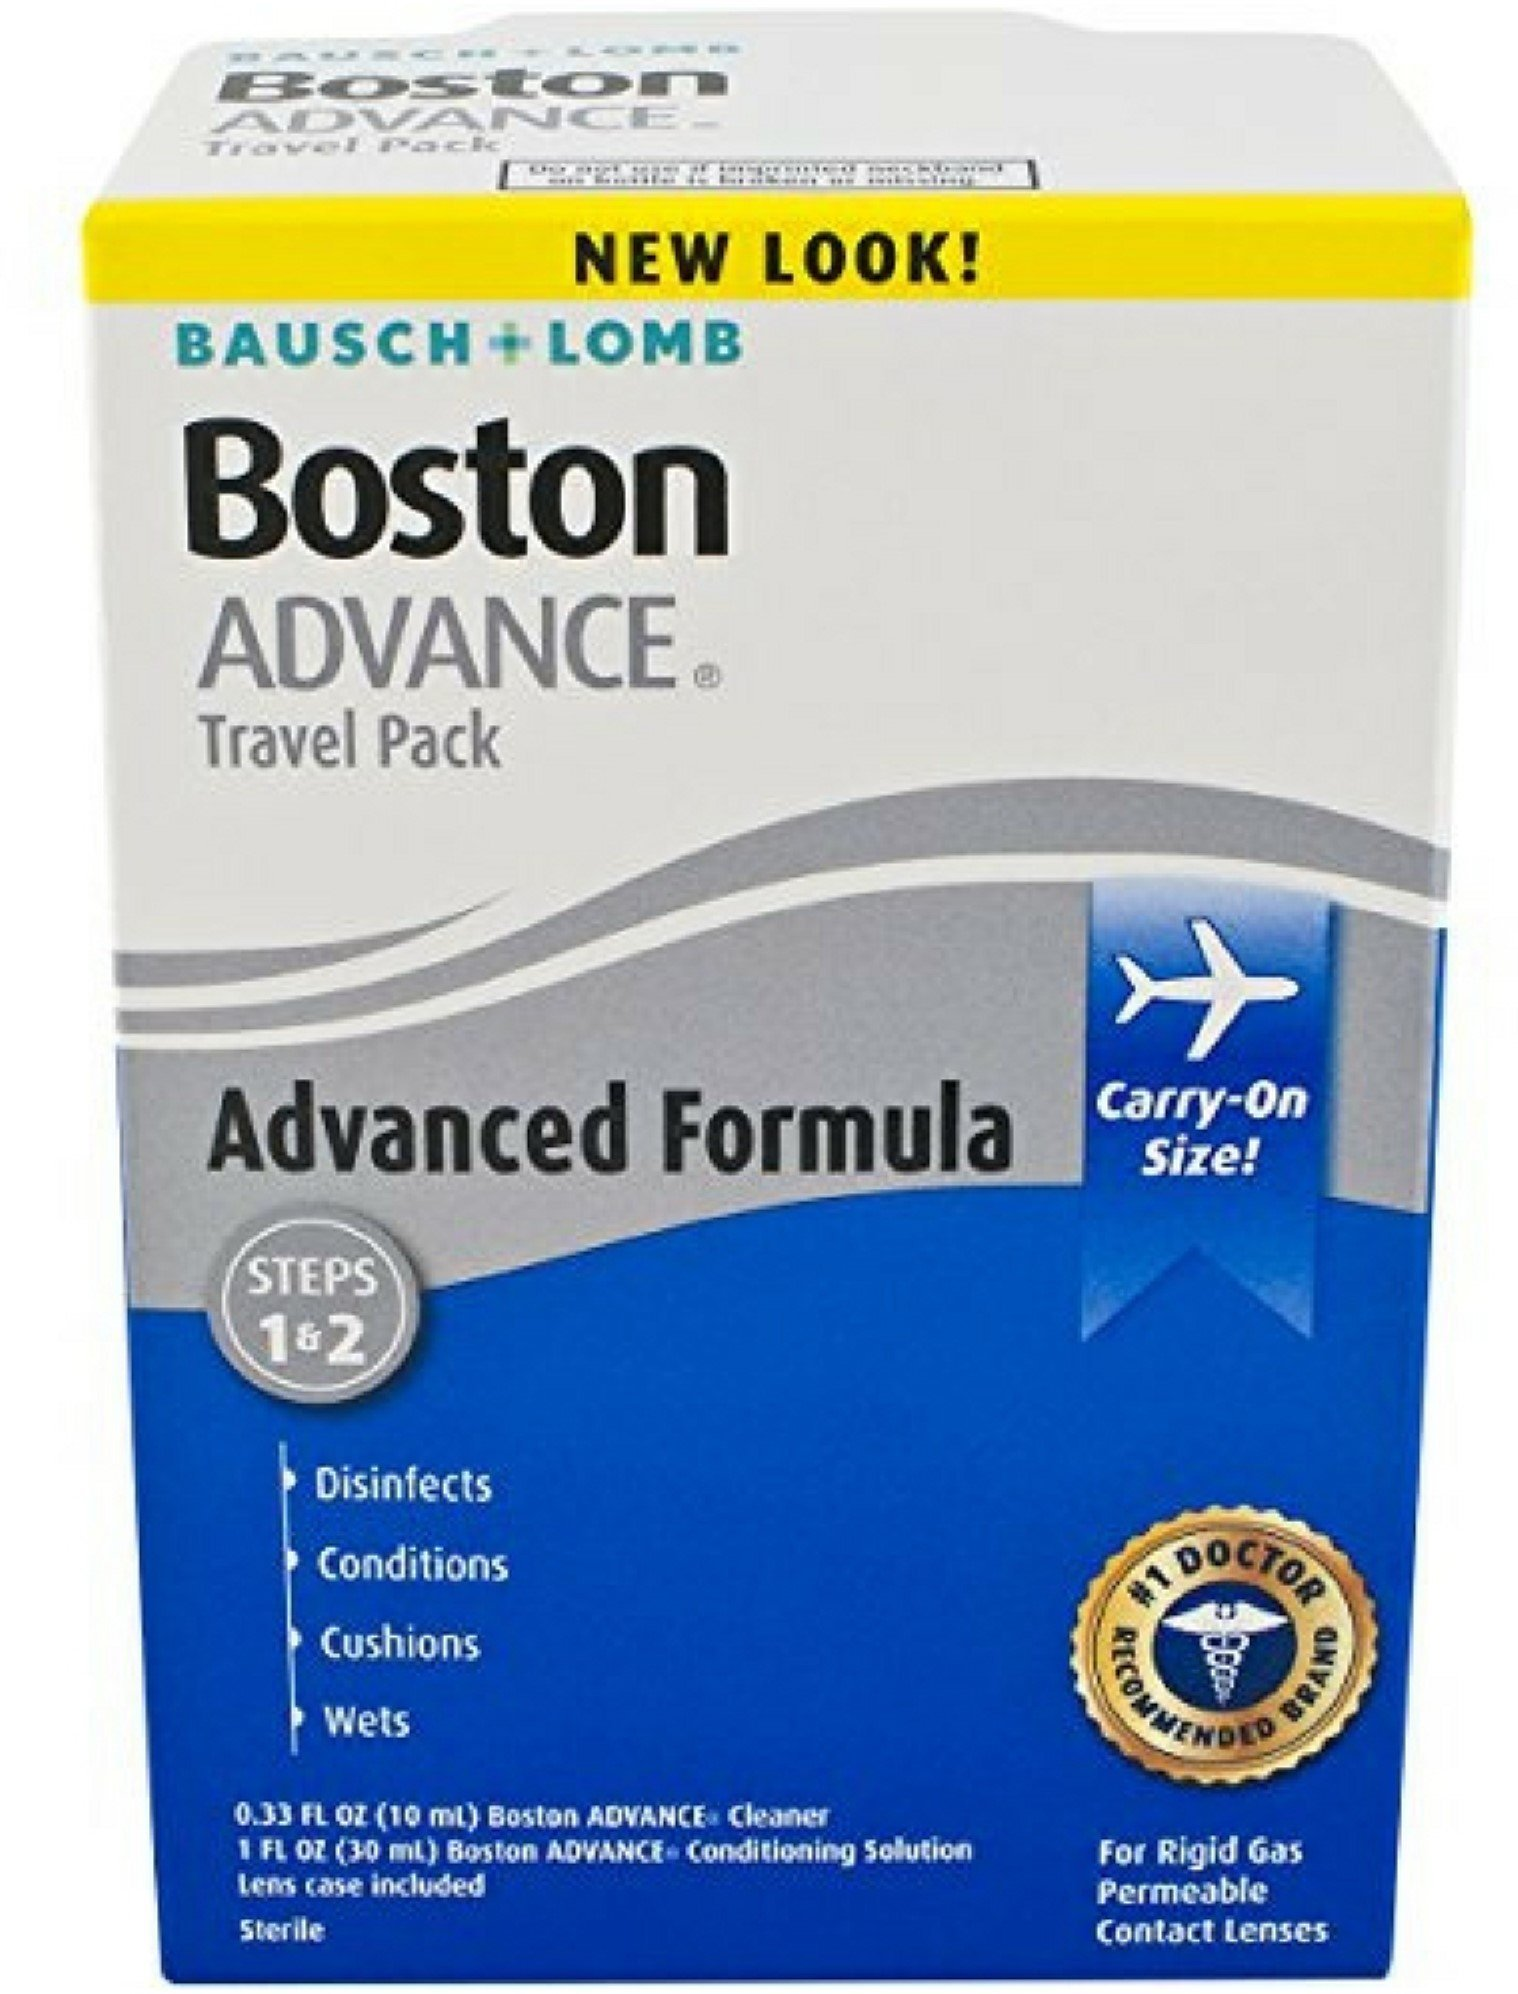 Bausch & Lomb Boston Advance Travel Pack-1.35 oz, 2 pack